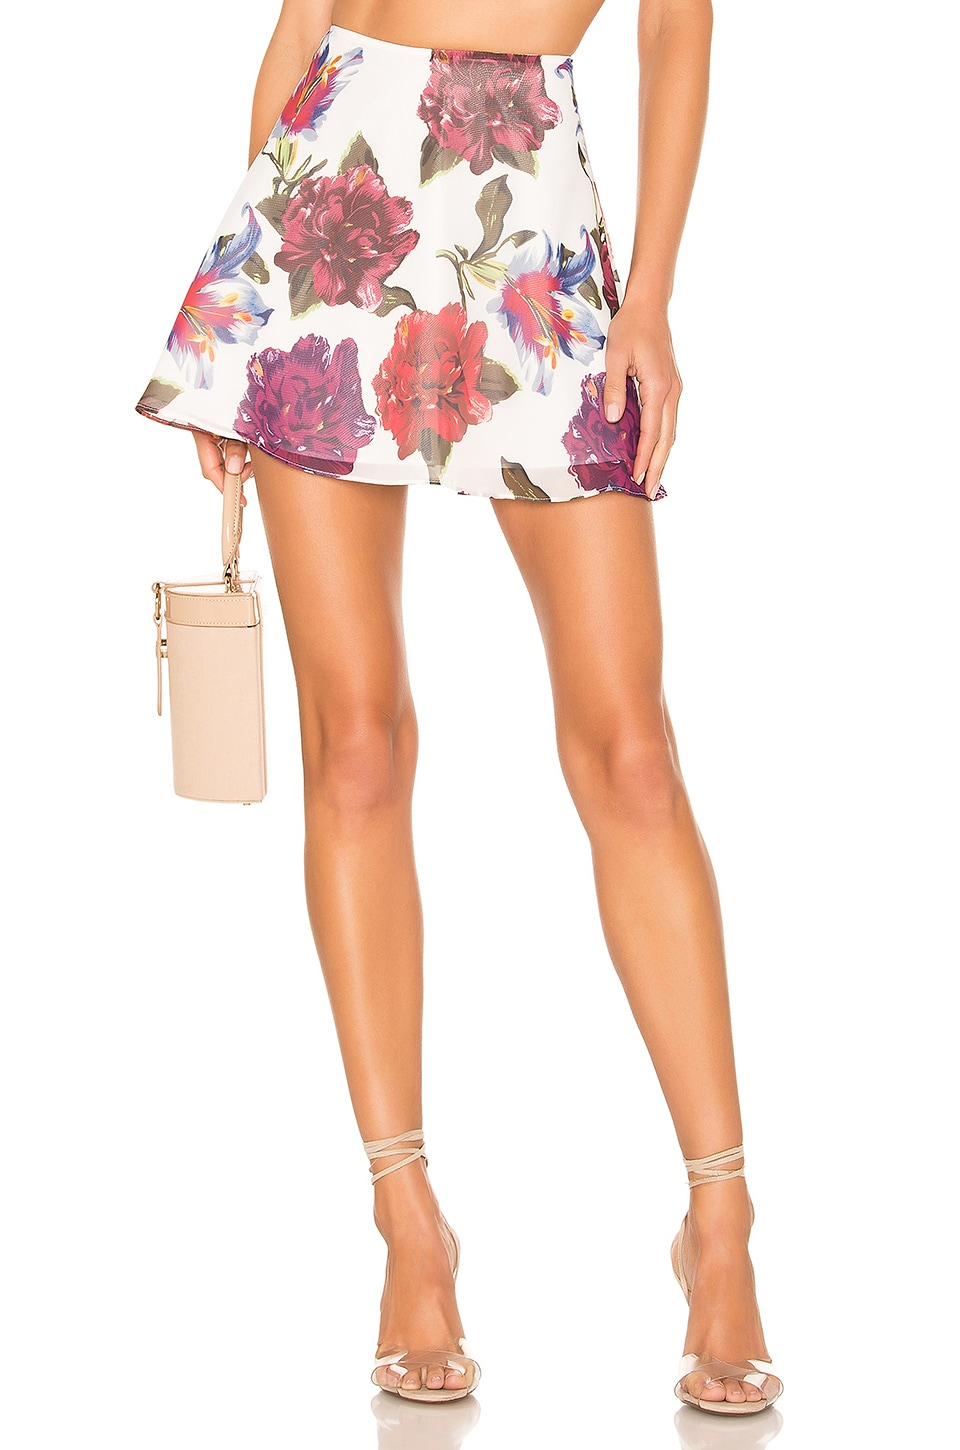 Privacy Please Palermo Mini Skirt in Lilac Floral